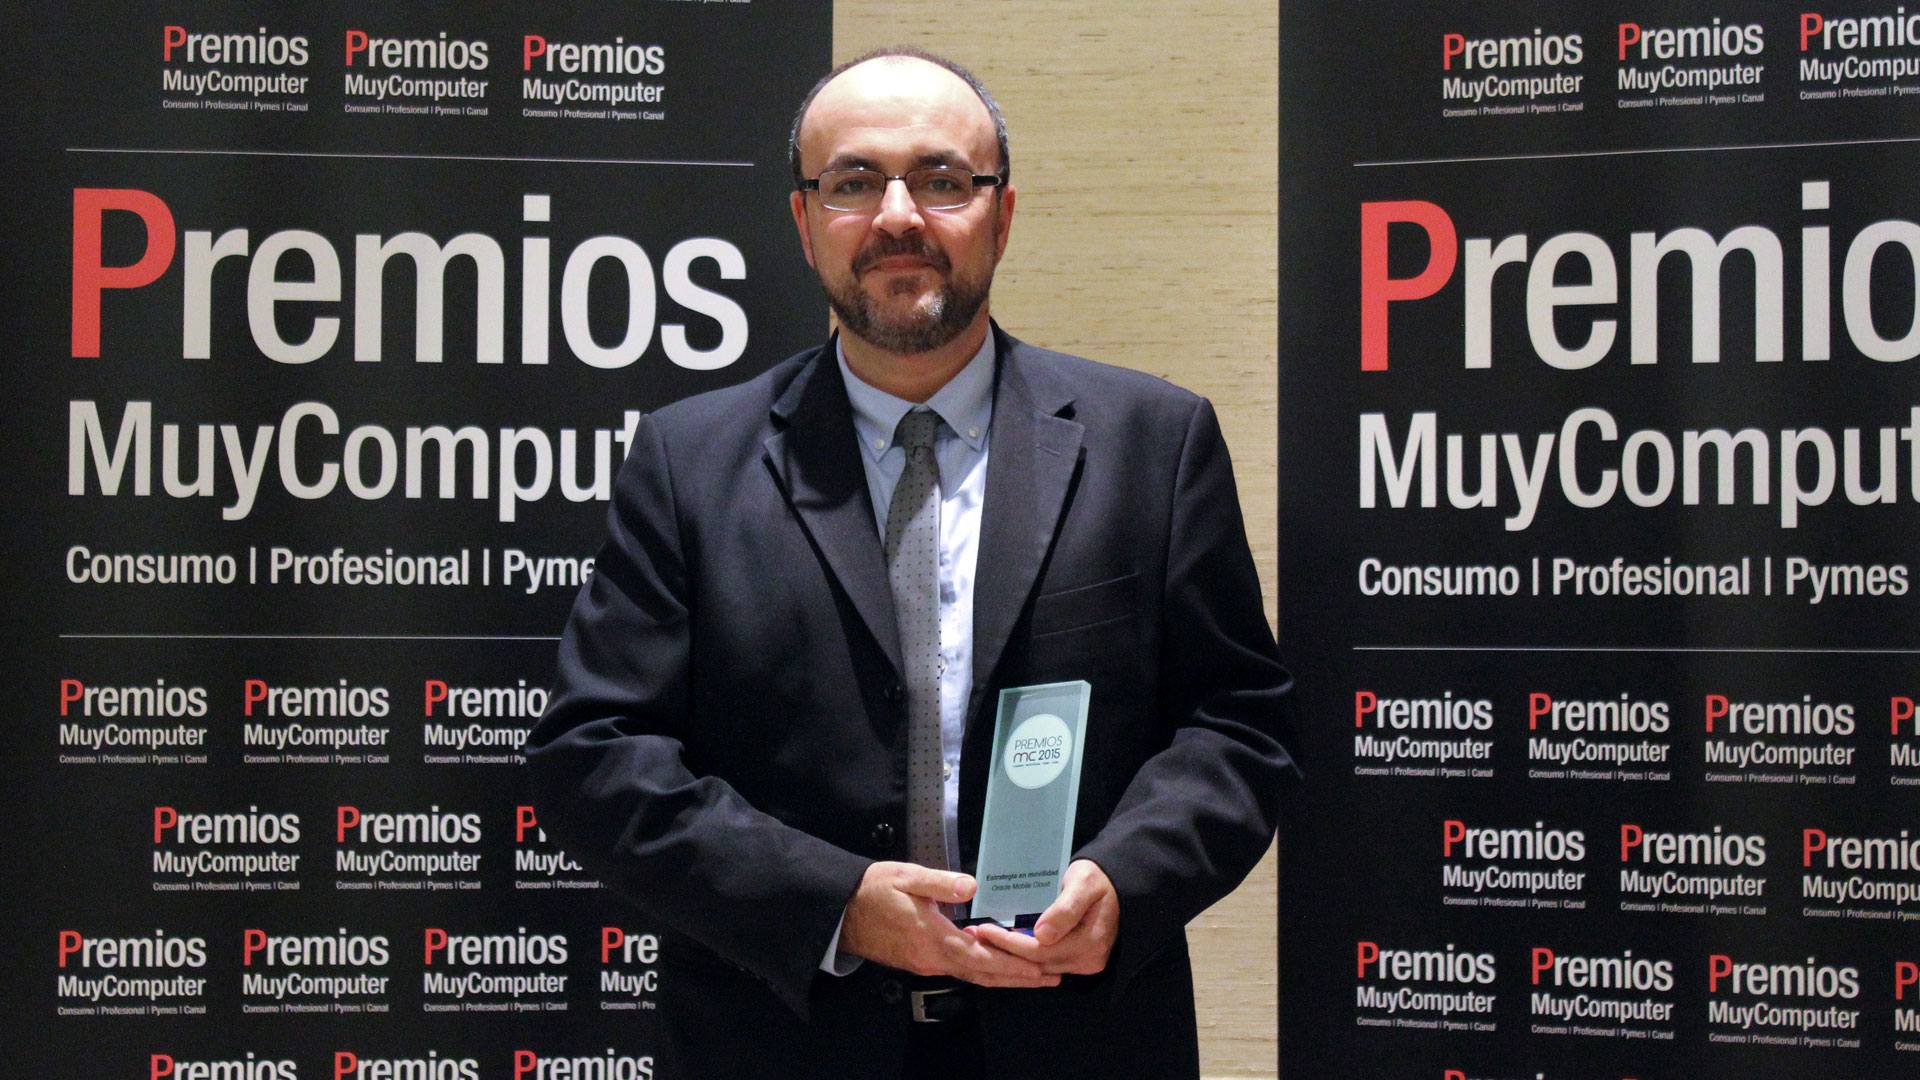 premios-mc2015-oracle-mobile-cloud-estrategia-movilidad